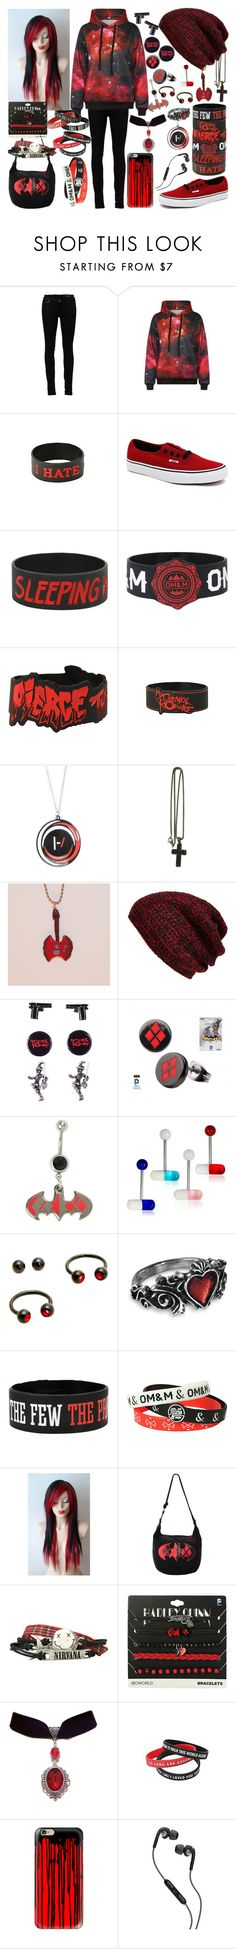 Untitled #285 by legacy-sinister on Polyvore featuring WithChic, Yves Saint Laurent, Vans, David Yurman, King & Fifth Supply Co., Casetify and Skullcandy